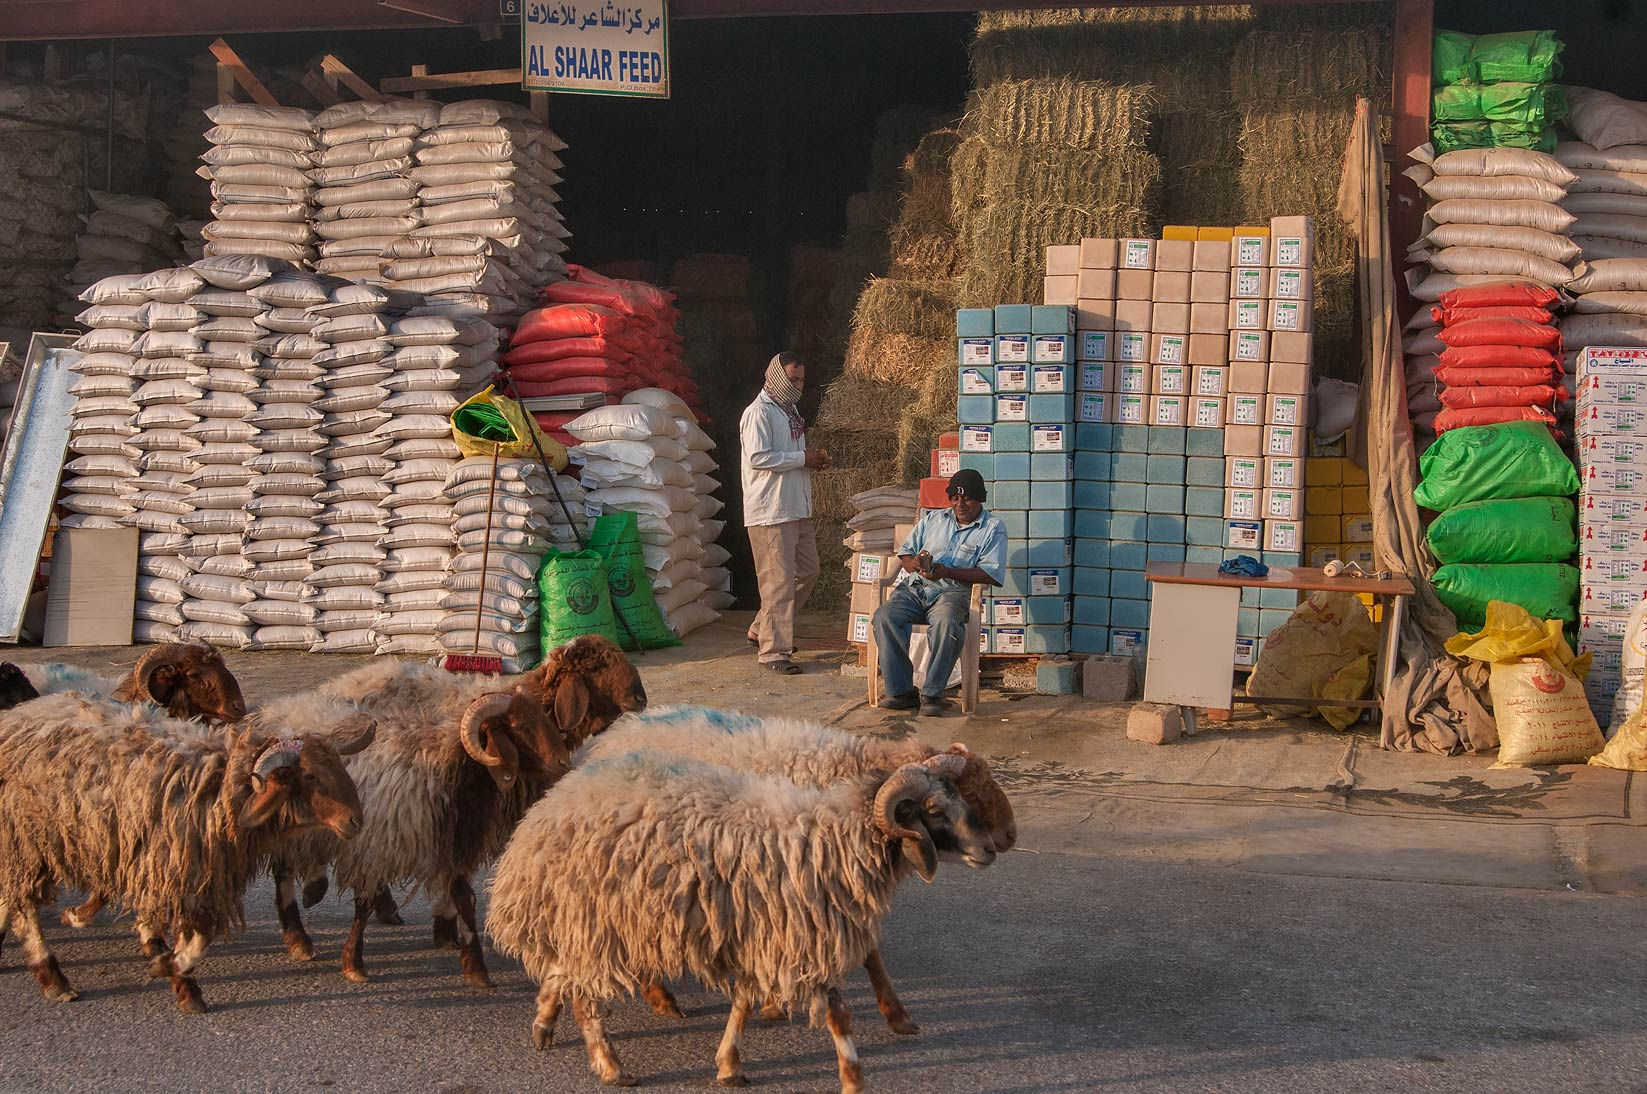 Sheep herd moving in Livestock Market, Wholesale Markets area. Doha, Qatar